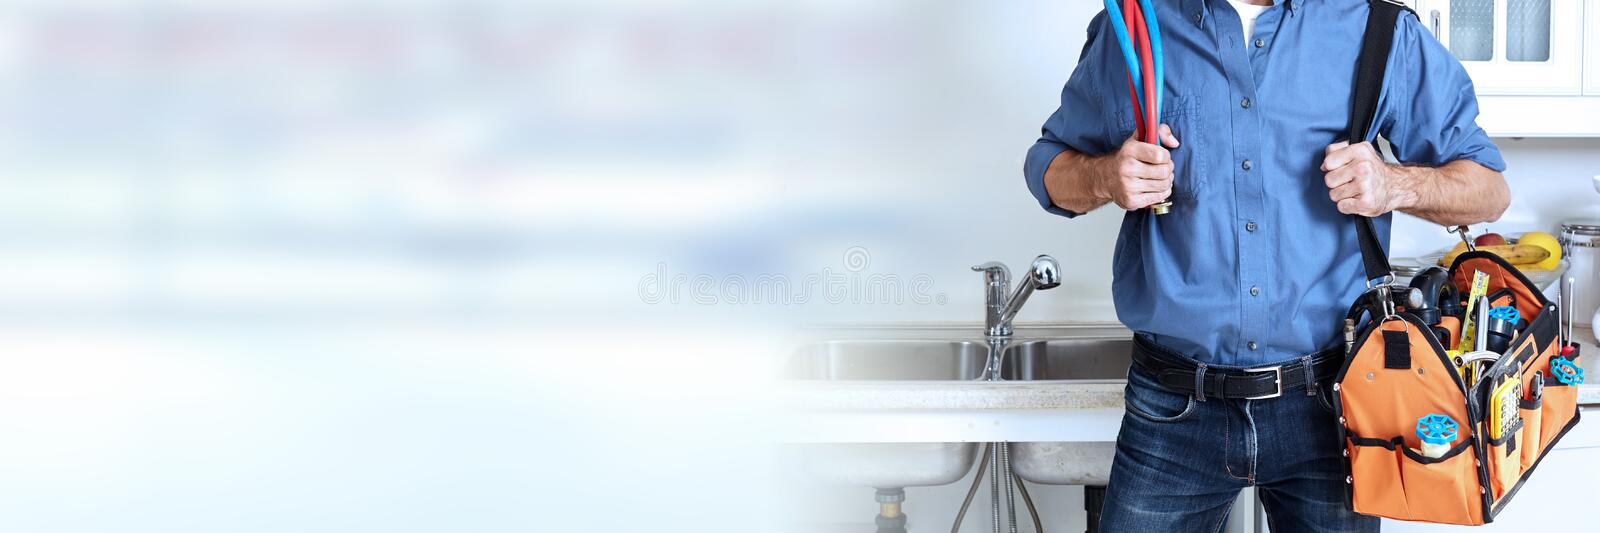 Plumber. stock photography